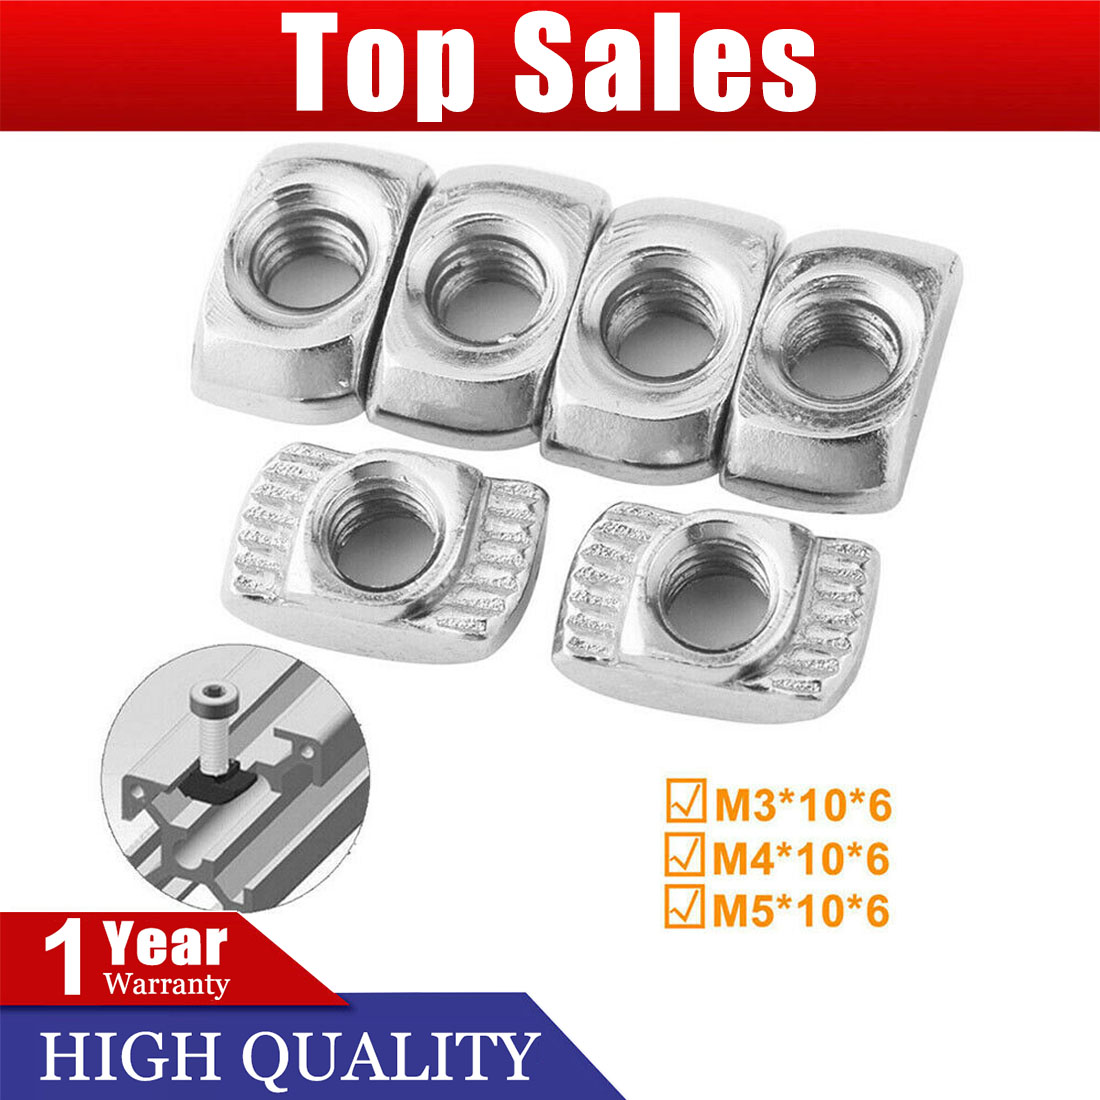 Drop in Nut for 2020 Extrusion 50pcs M5 T-Slot Hammer Head Female Thread